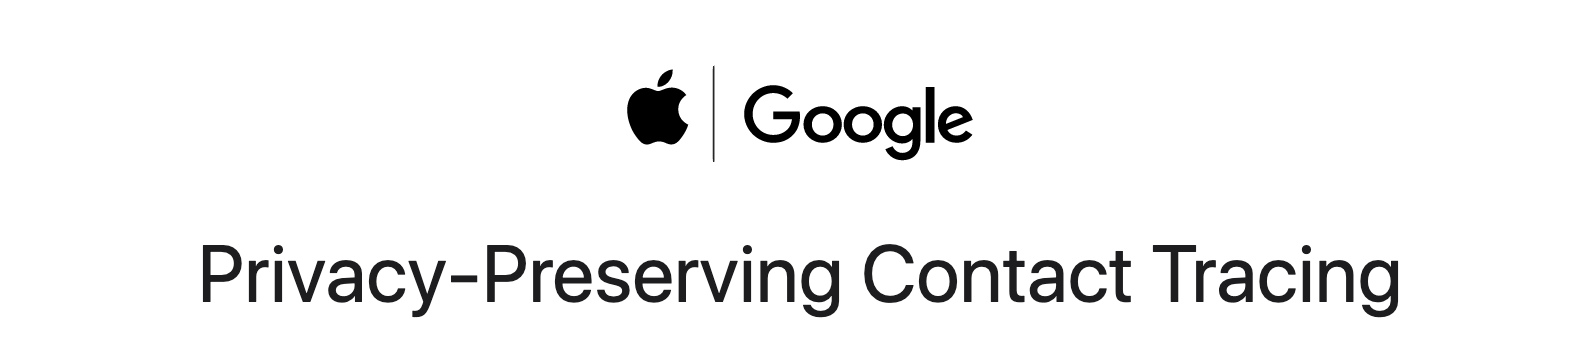 Privacy Preserving Contact Tracing